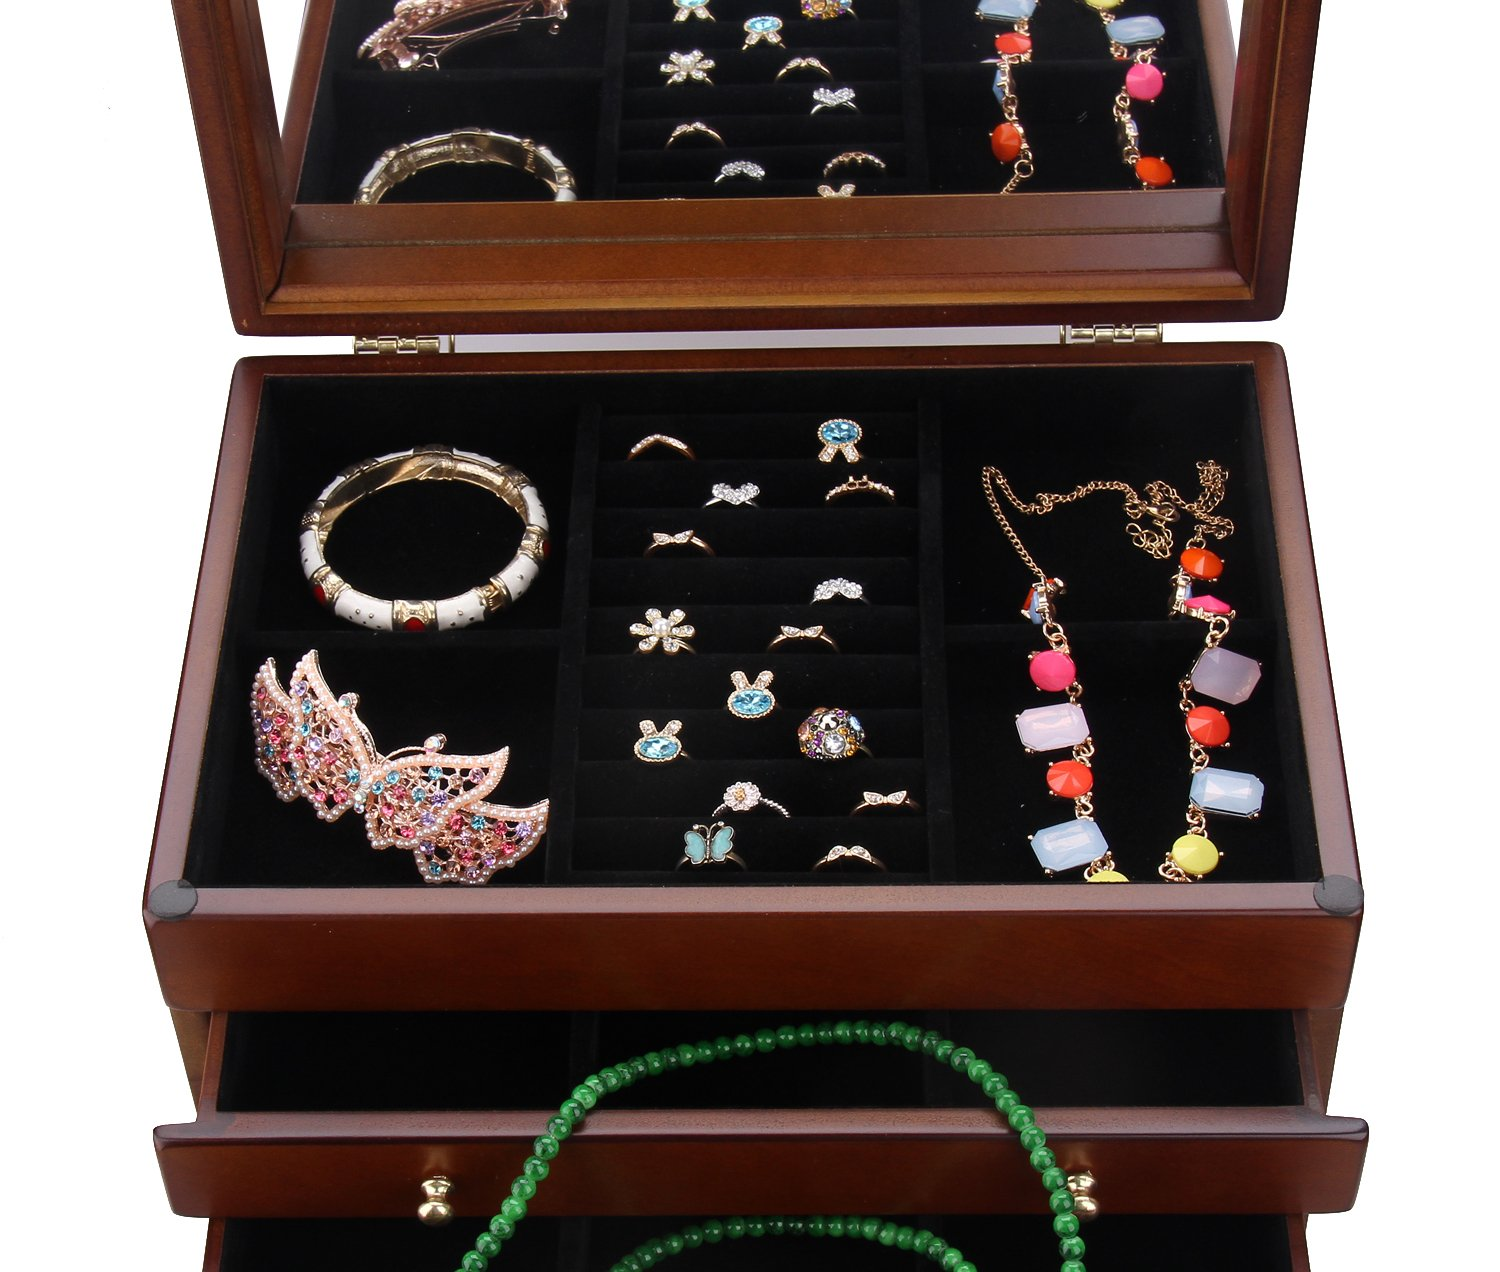 Large Wooden Jewelry Box Necklace Ring Armoire Crate on Dresser Chest Organizer Armoire11.6 inch x7.87 inch x11.2 inch by BELLAMORE GIFT (Image #3)